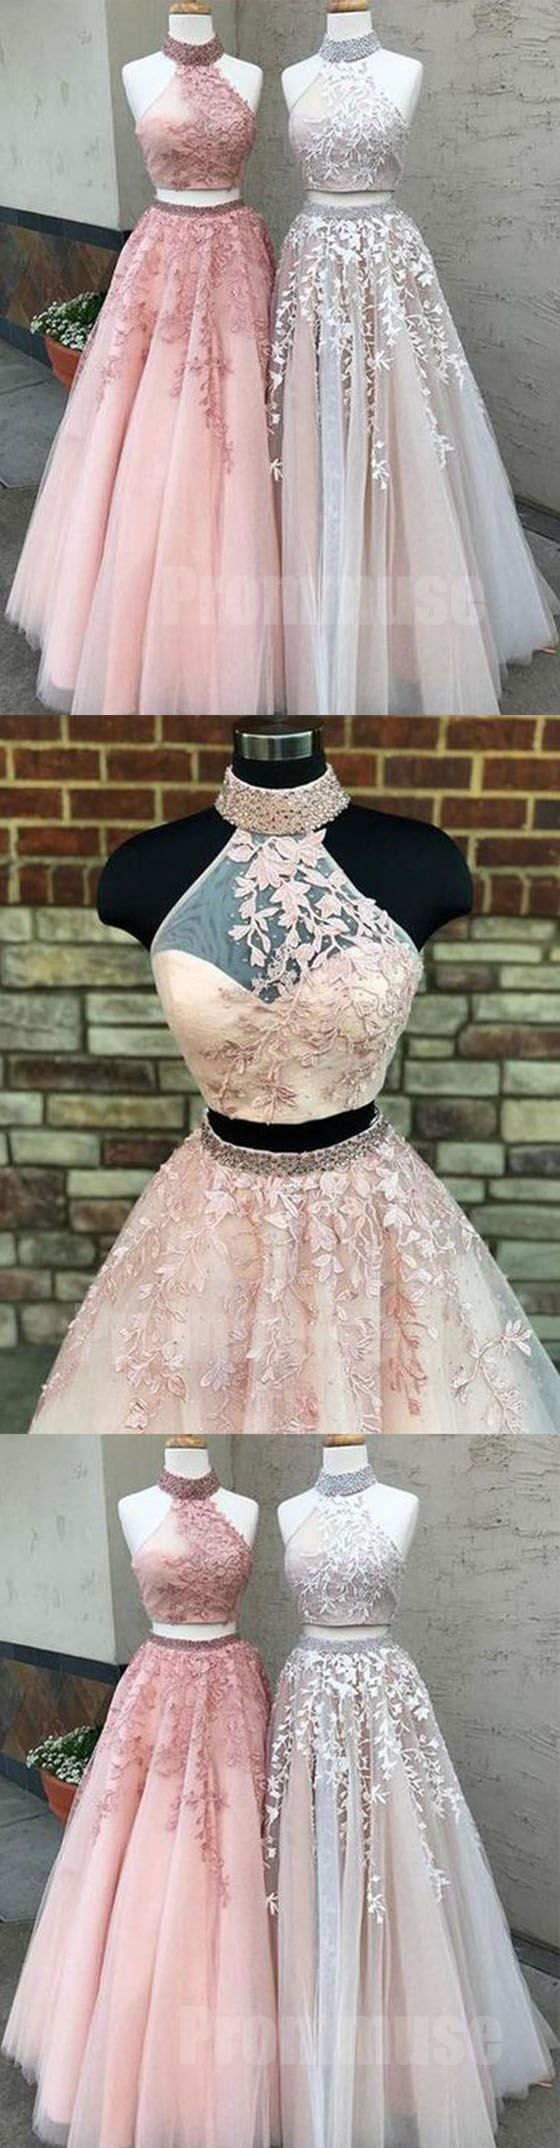 New arrival pink prom dress prom dresses pieces long sexy